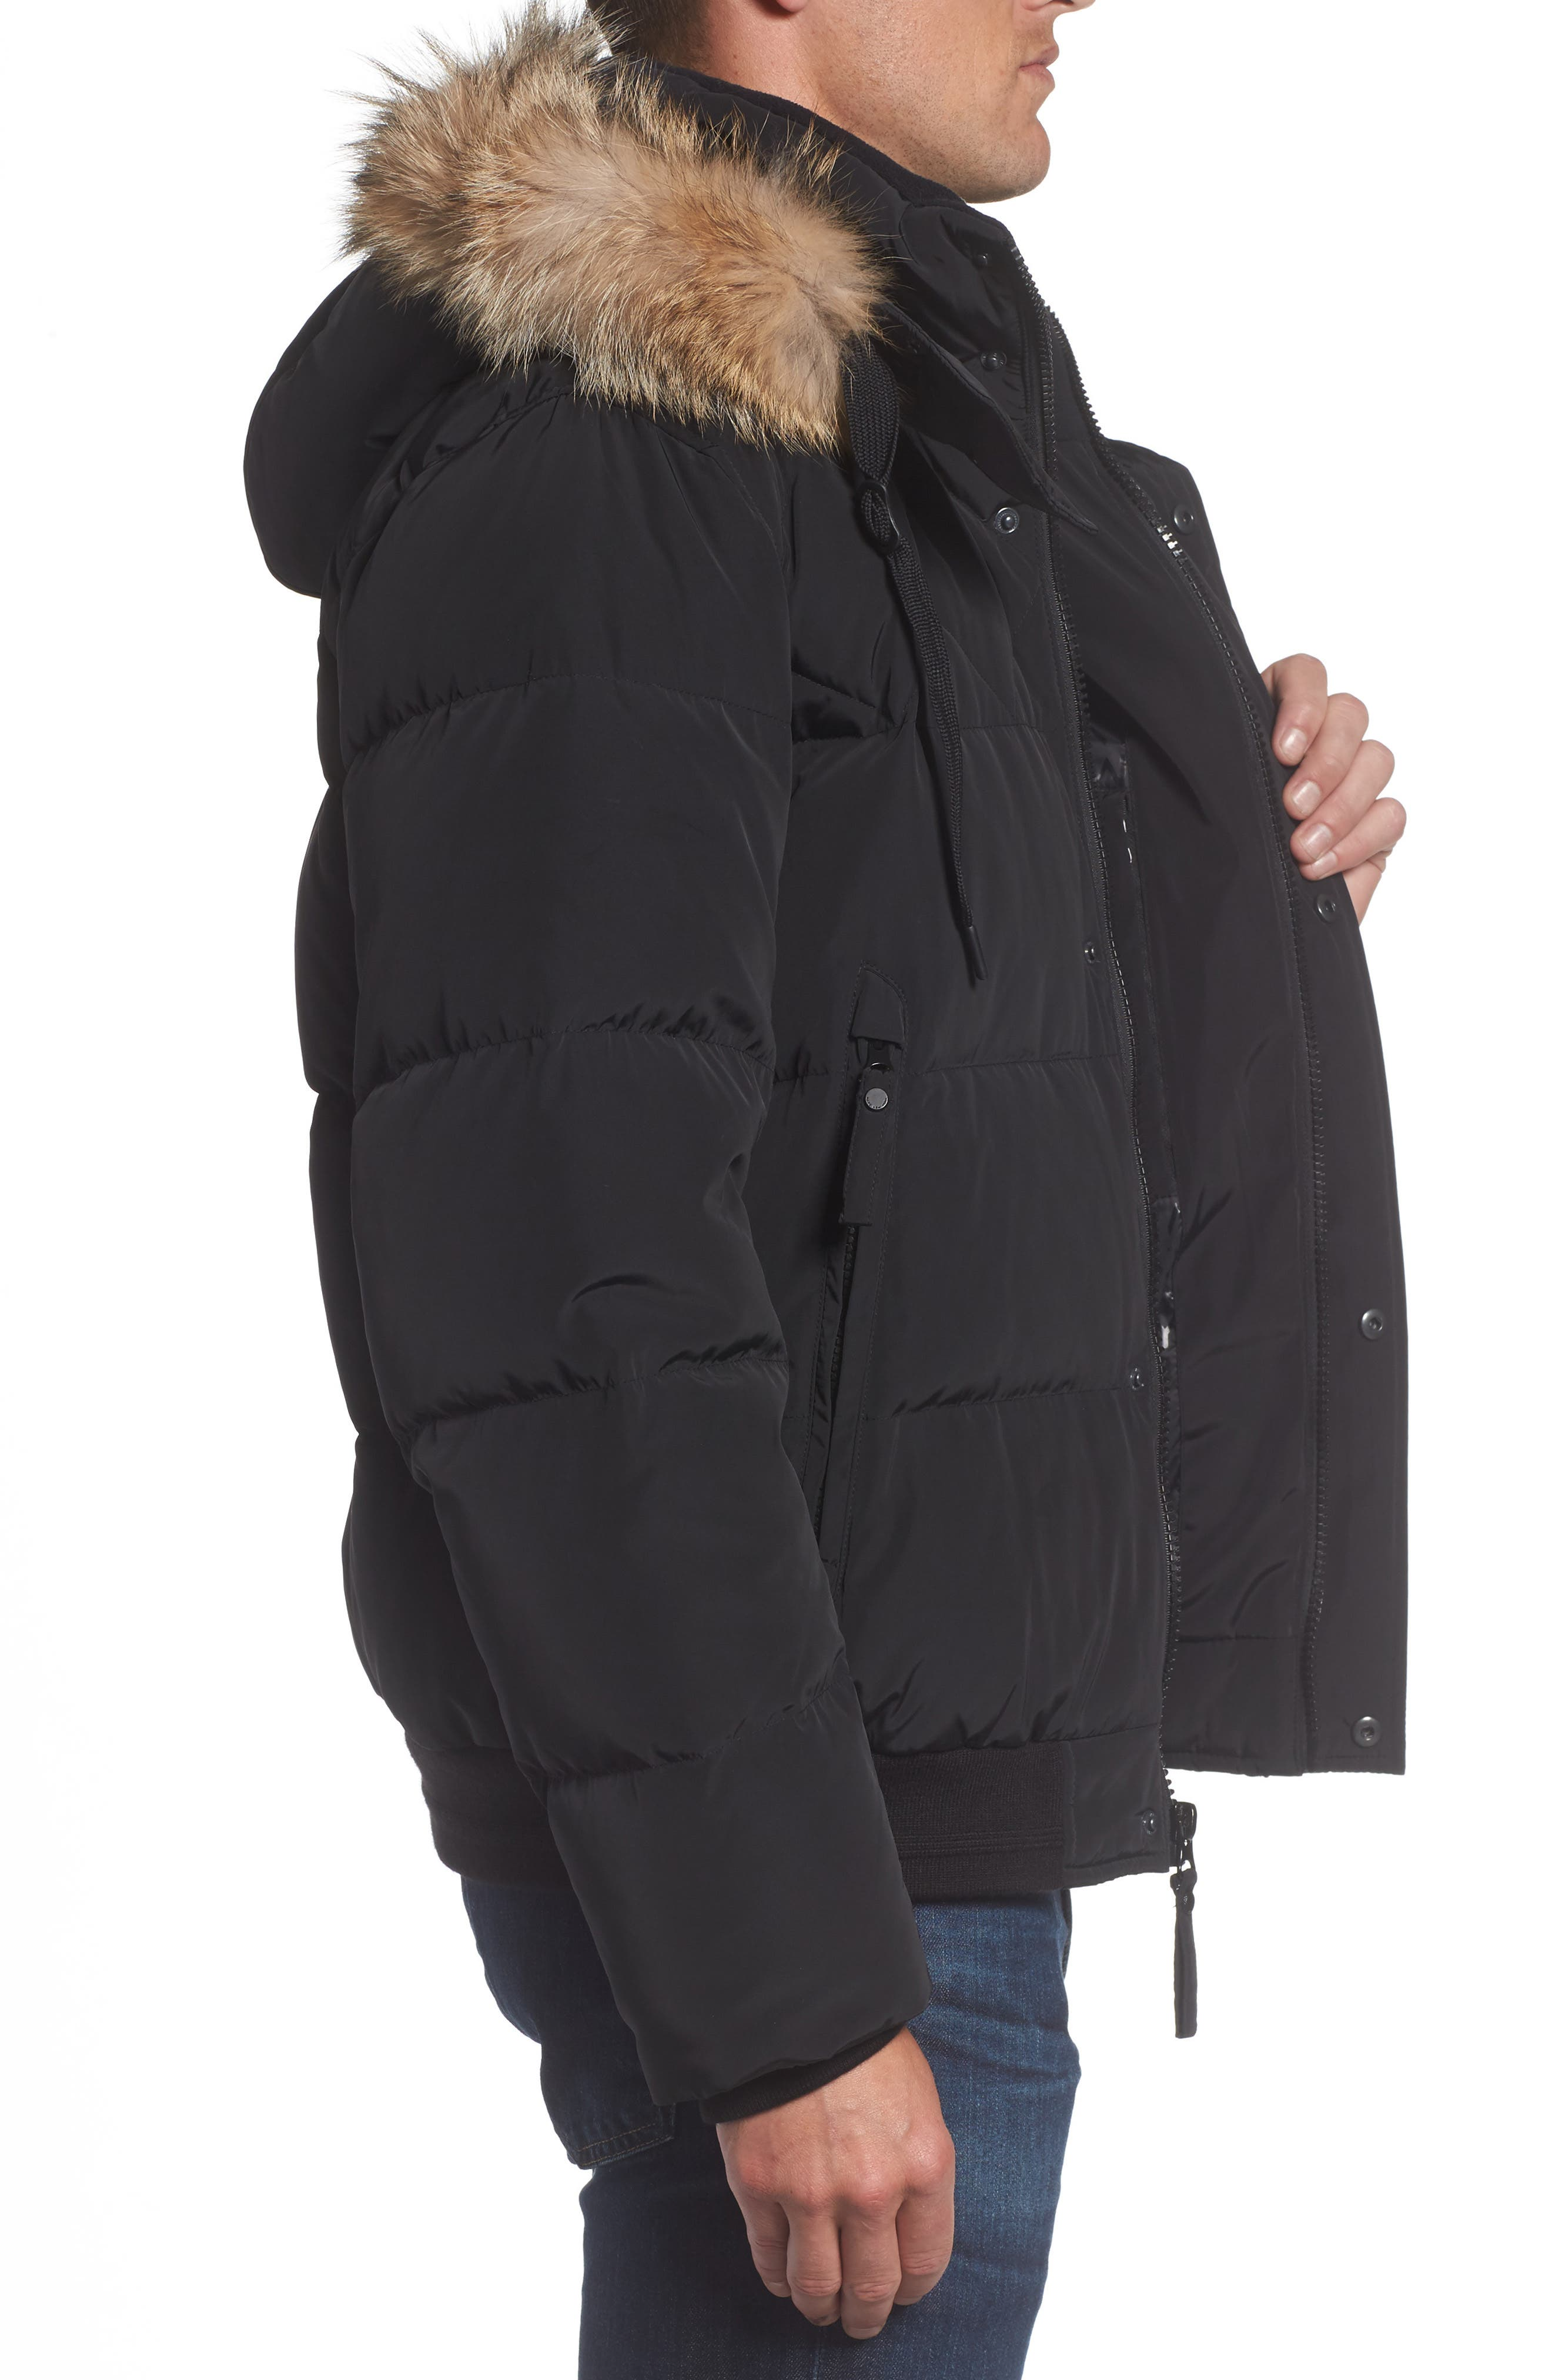 Insulated Jacket with Genuine Coyote Fur,                             Alternate thumbnail 3, color,                             Black